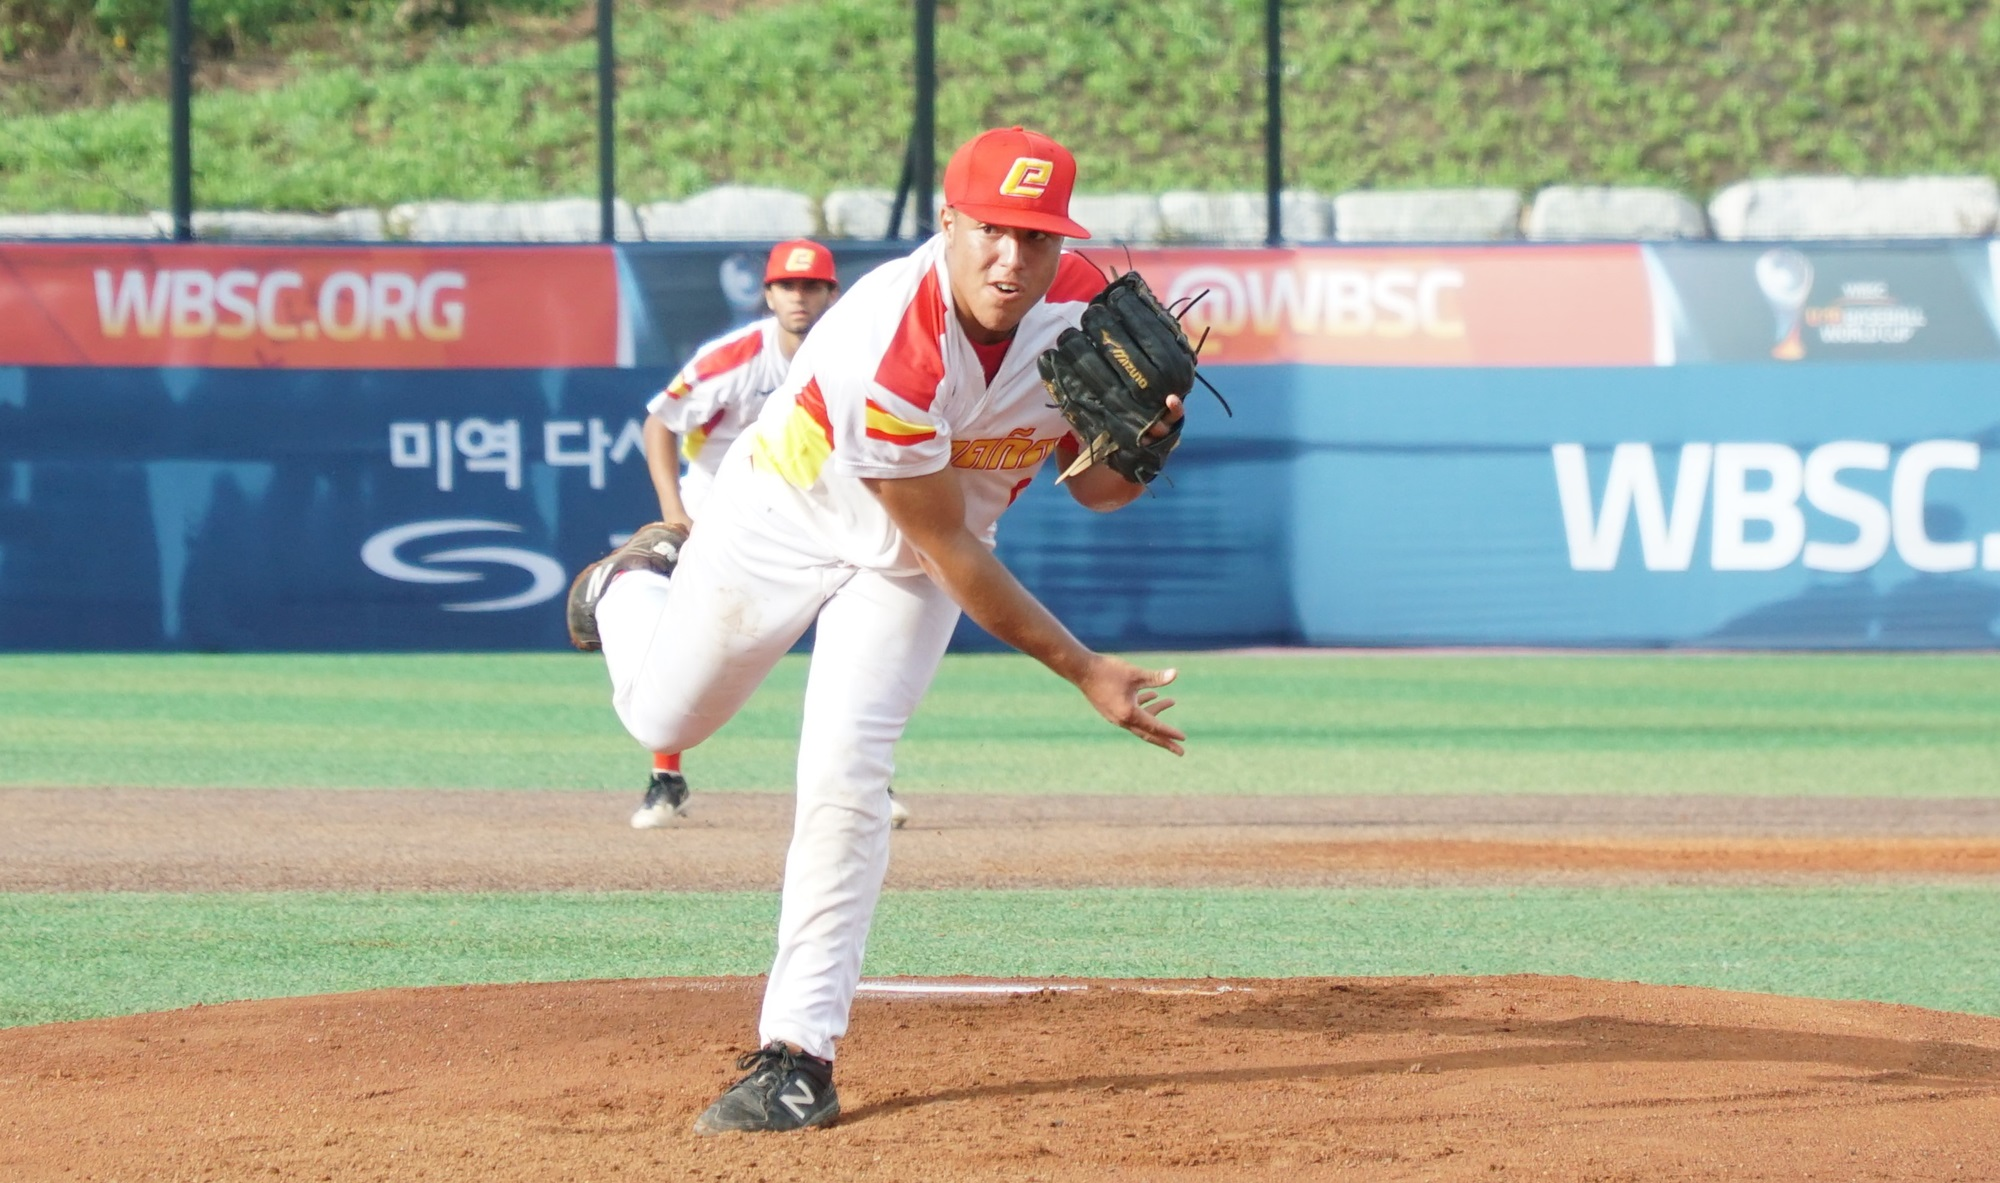 Frank Hernandez pitched five scoreless innings for Spain